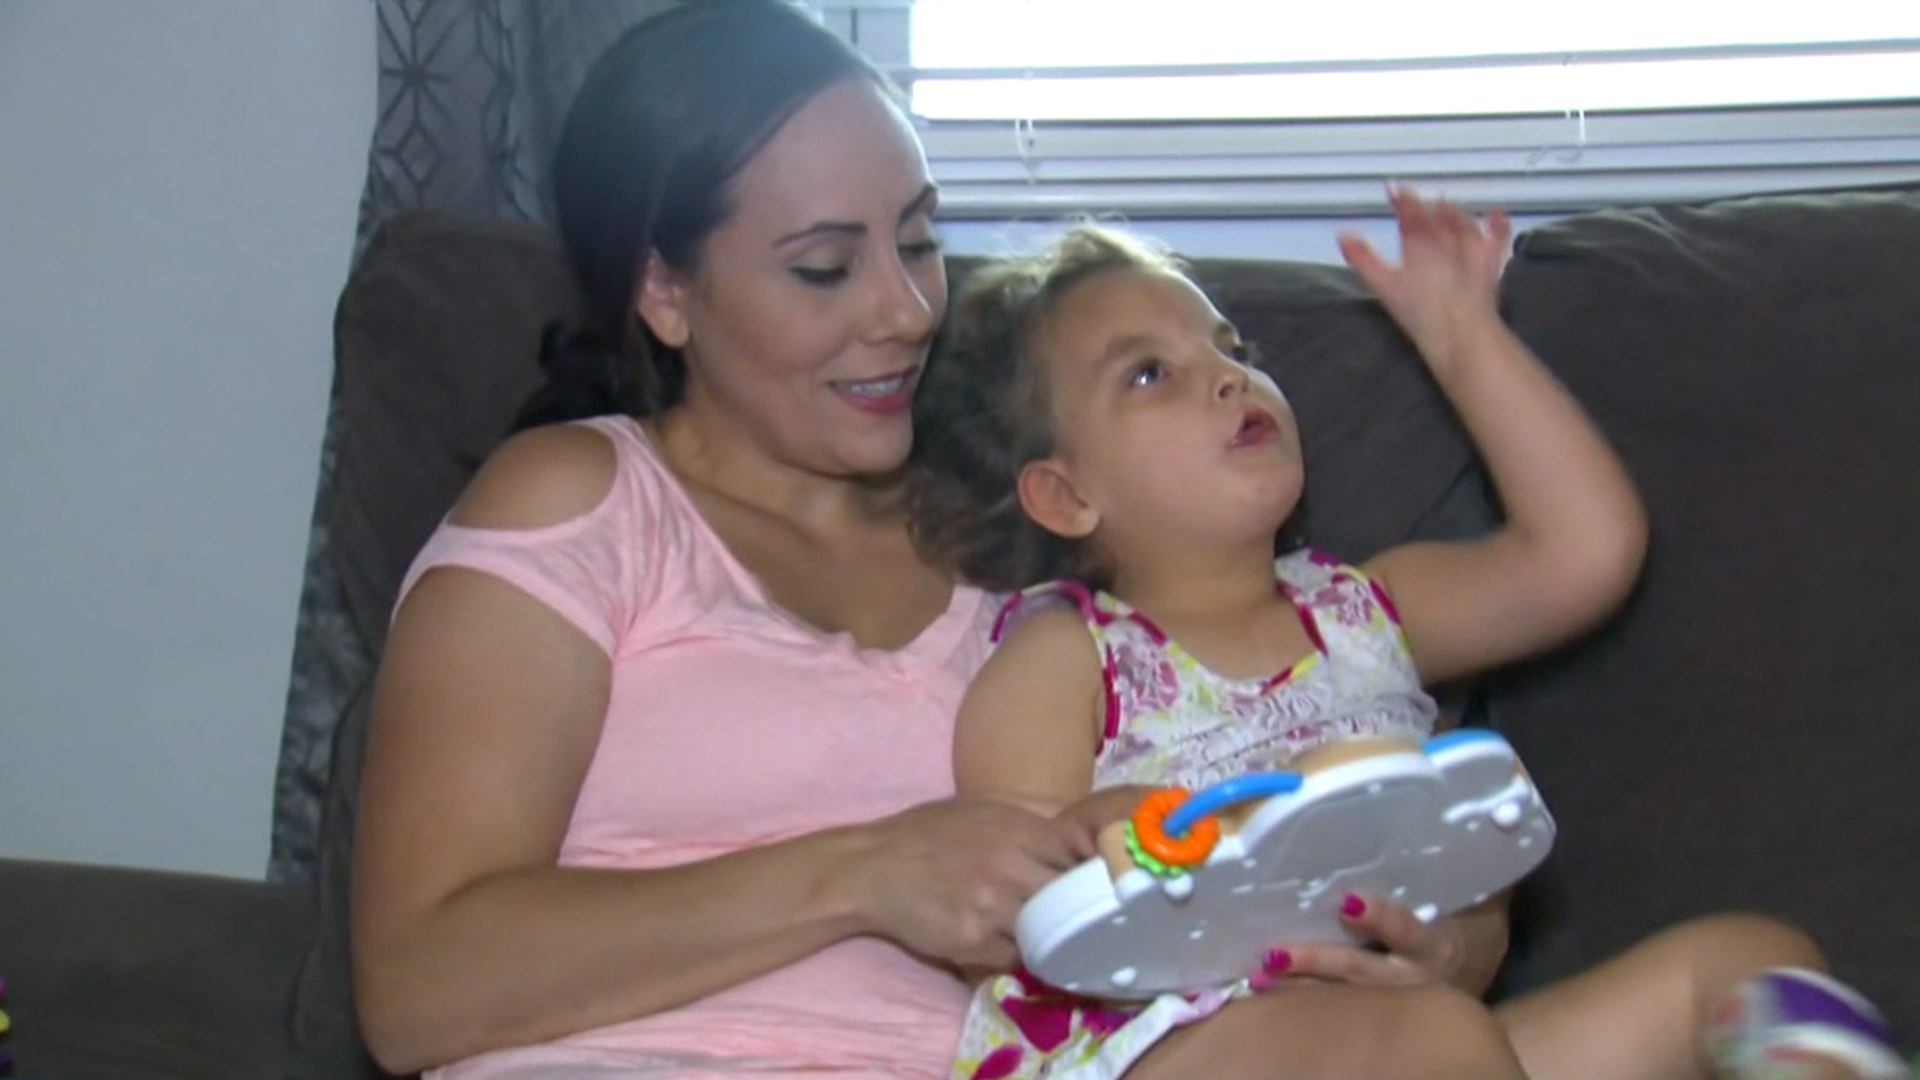 Texas couple considering divorce to help pay for daughter's health care